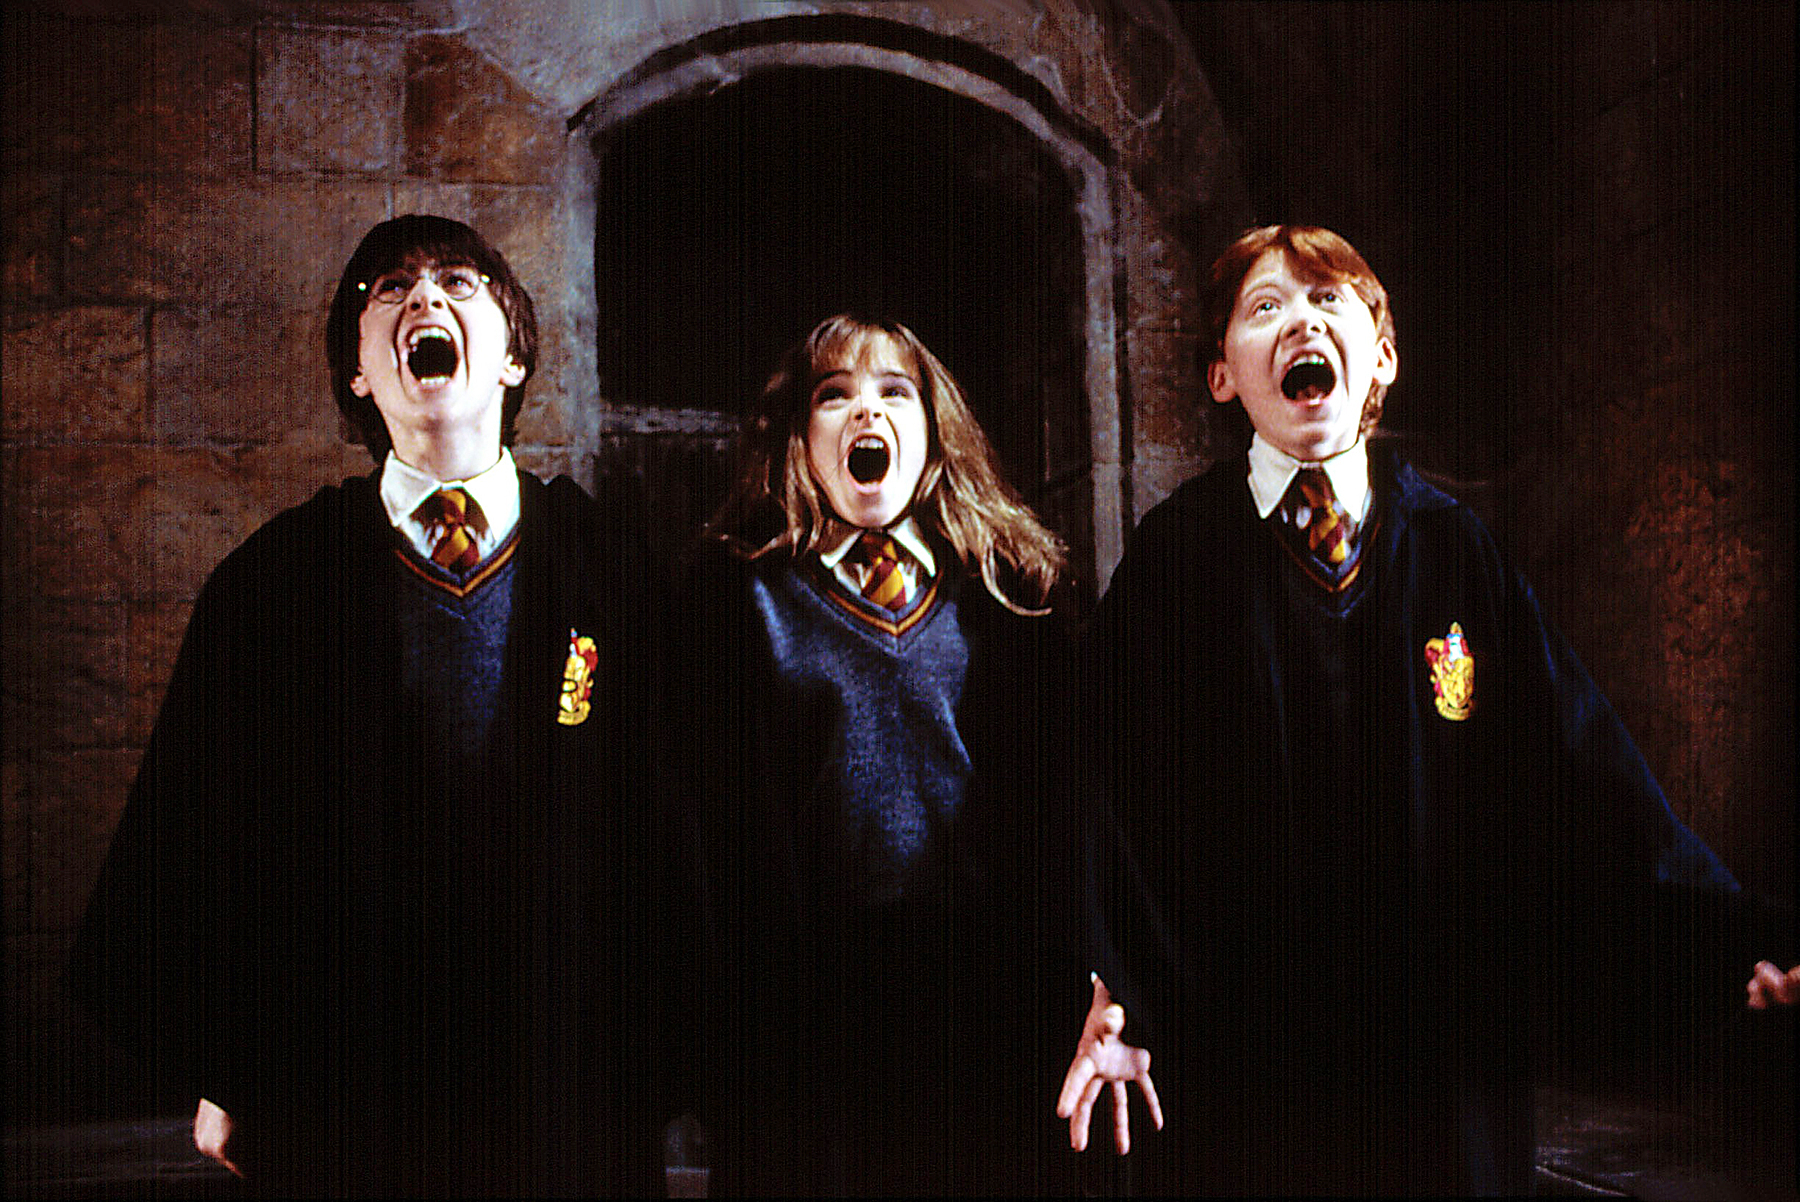 Daniel Radcliffe Emma Watson Rupert Grint Harry Potter and the Sorcerer's Stone